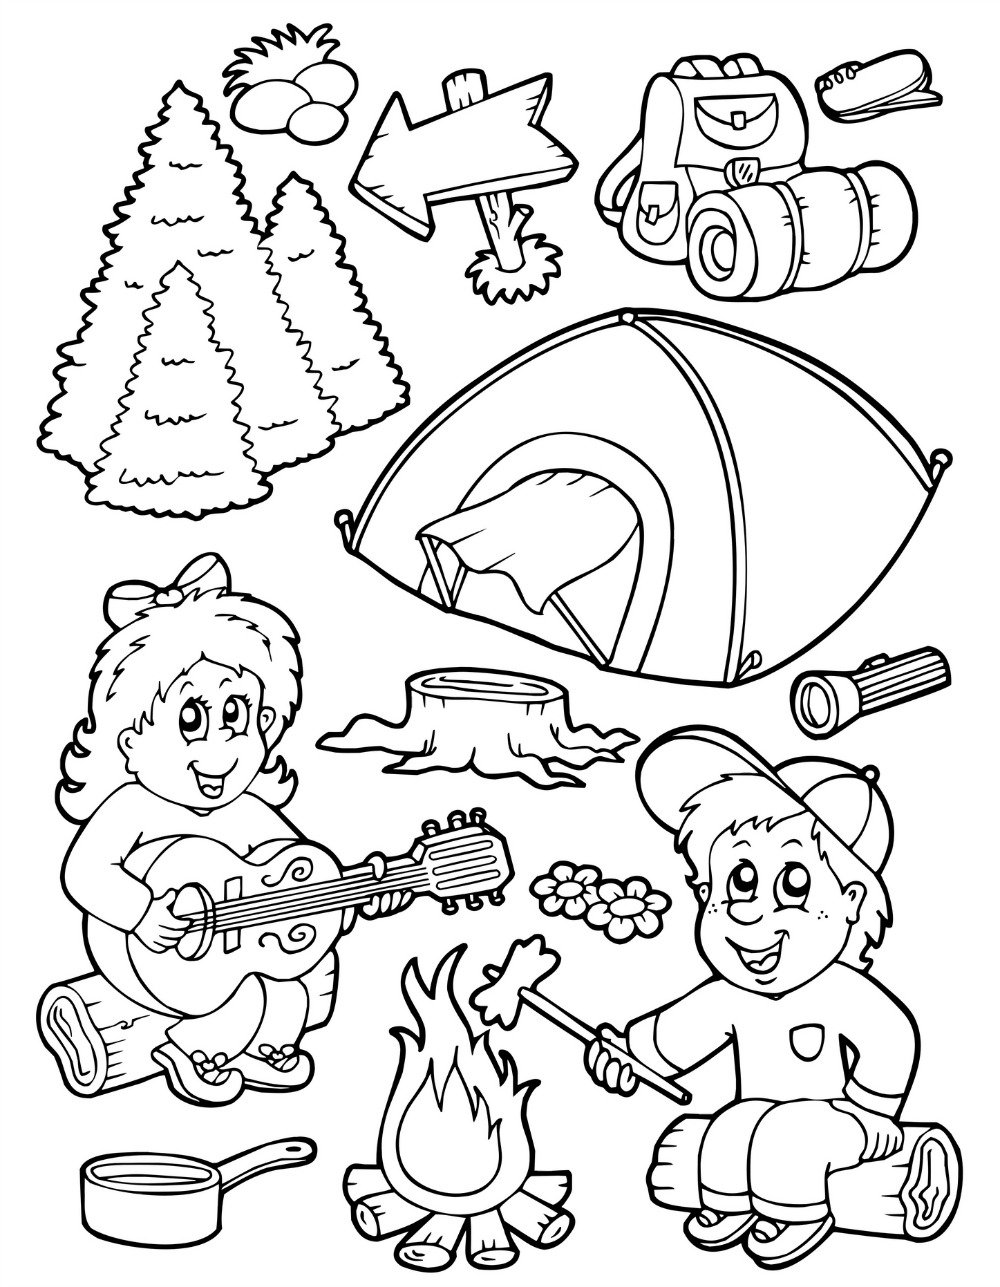 camping coloring pages for preschoolers camp activities camping coloring pages coloring camping for preschoolers pages